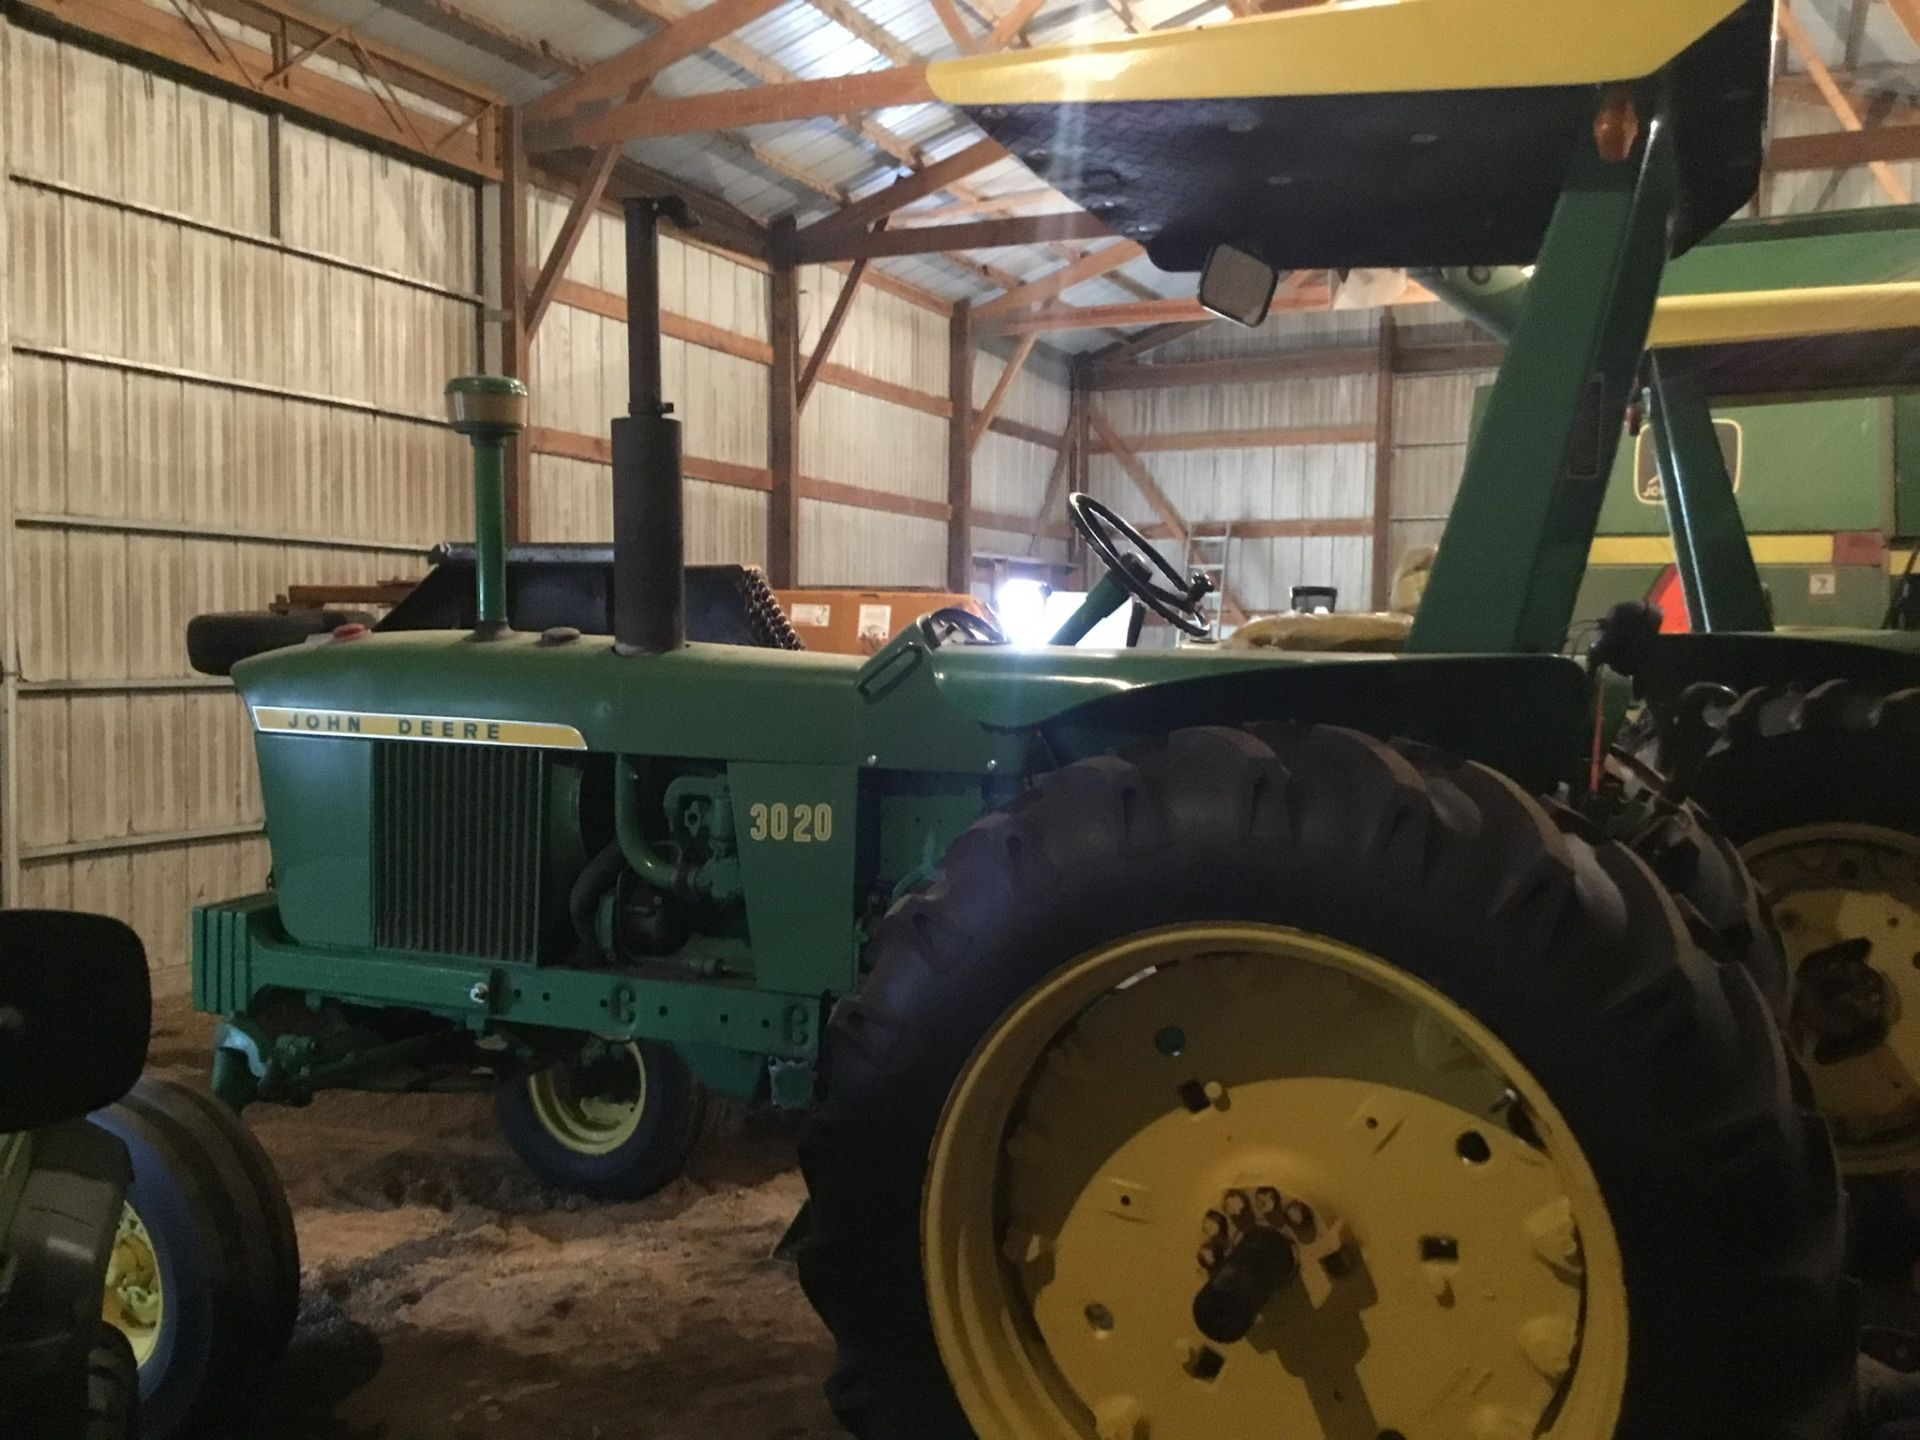 1966 John Deere 3020 Gas, JD Wide Front, Synchro Range, Roll Bar & Canopy, Dual Hydraulic Remotes, - Image 13 of 13